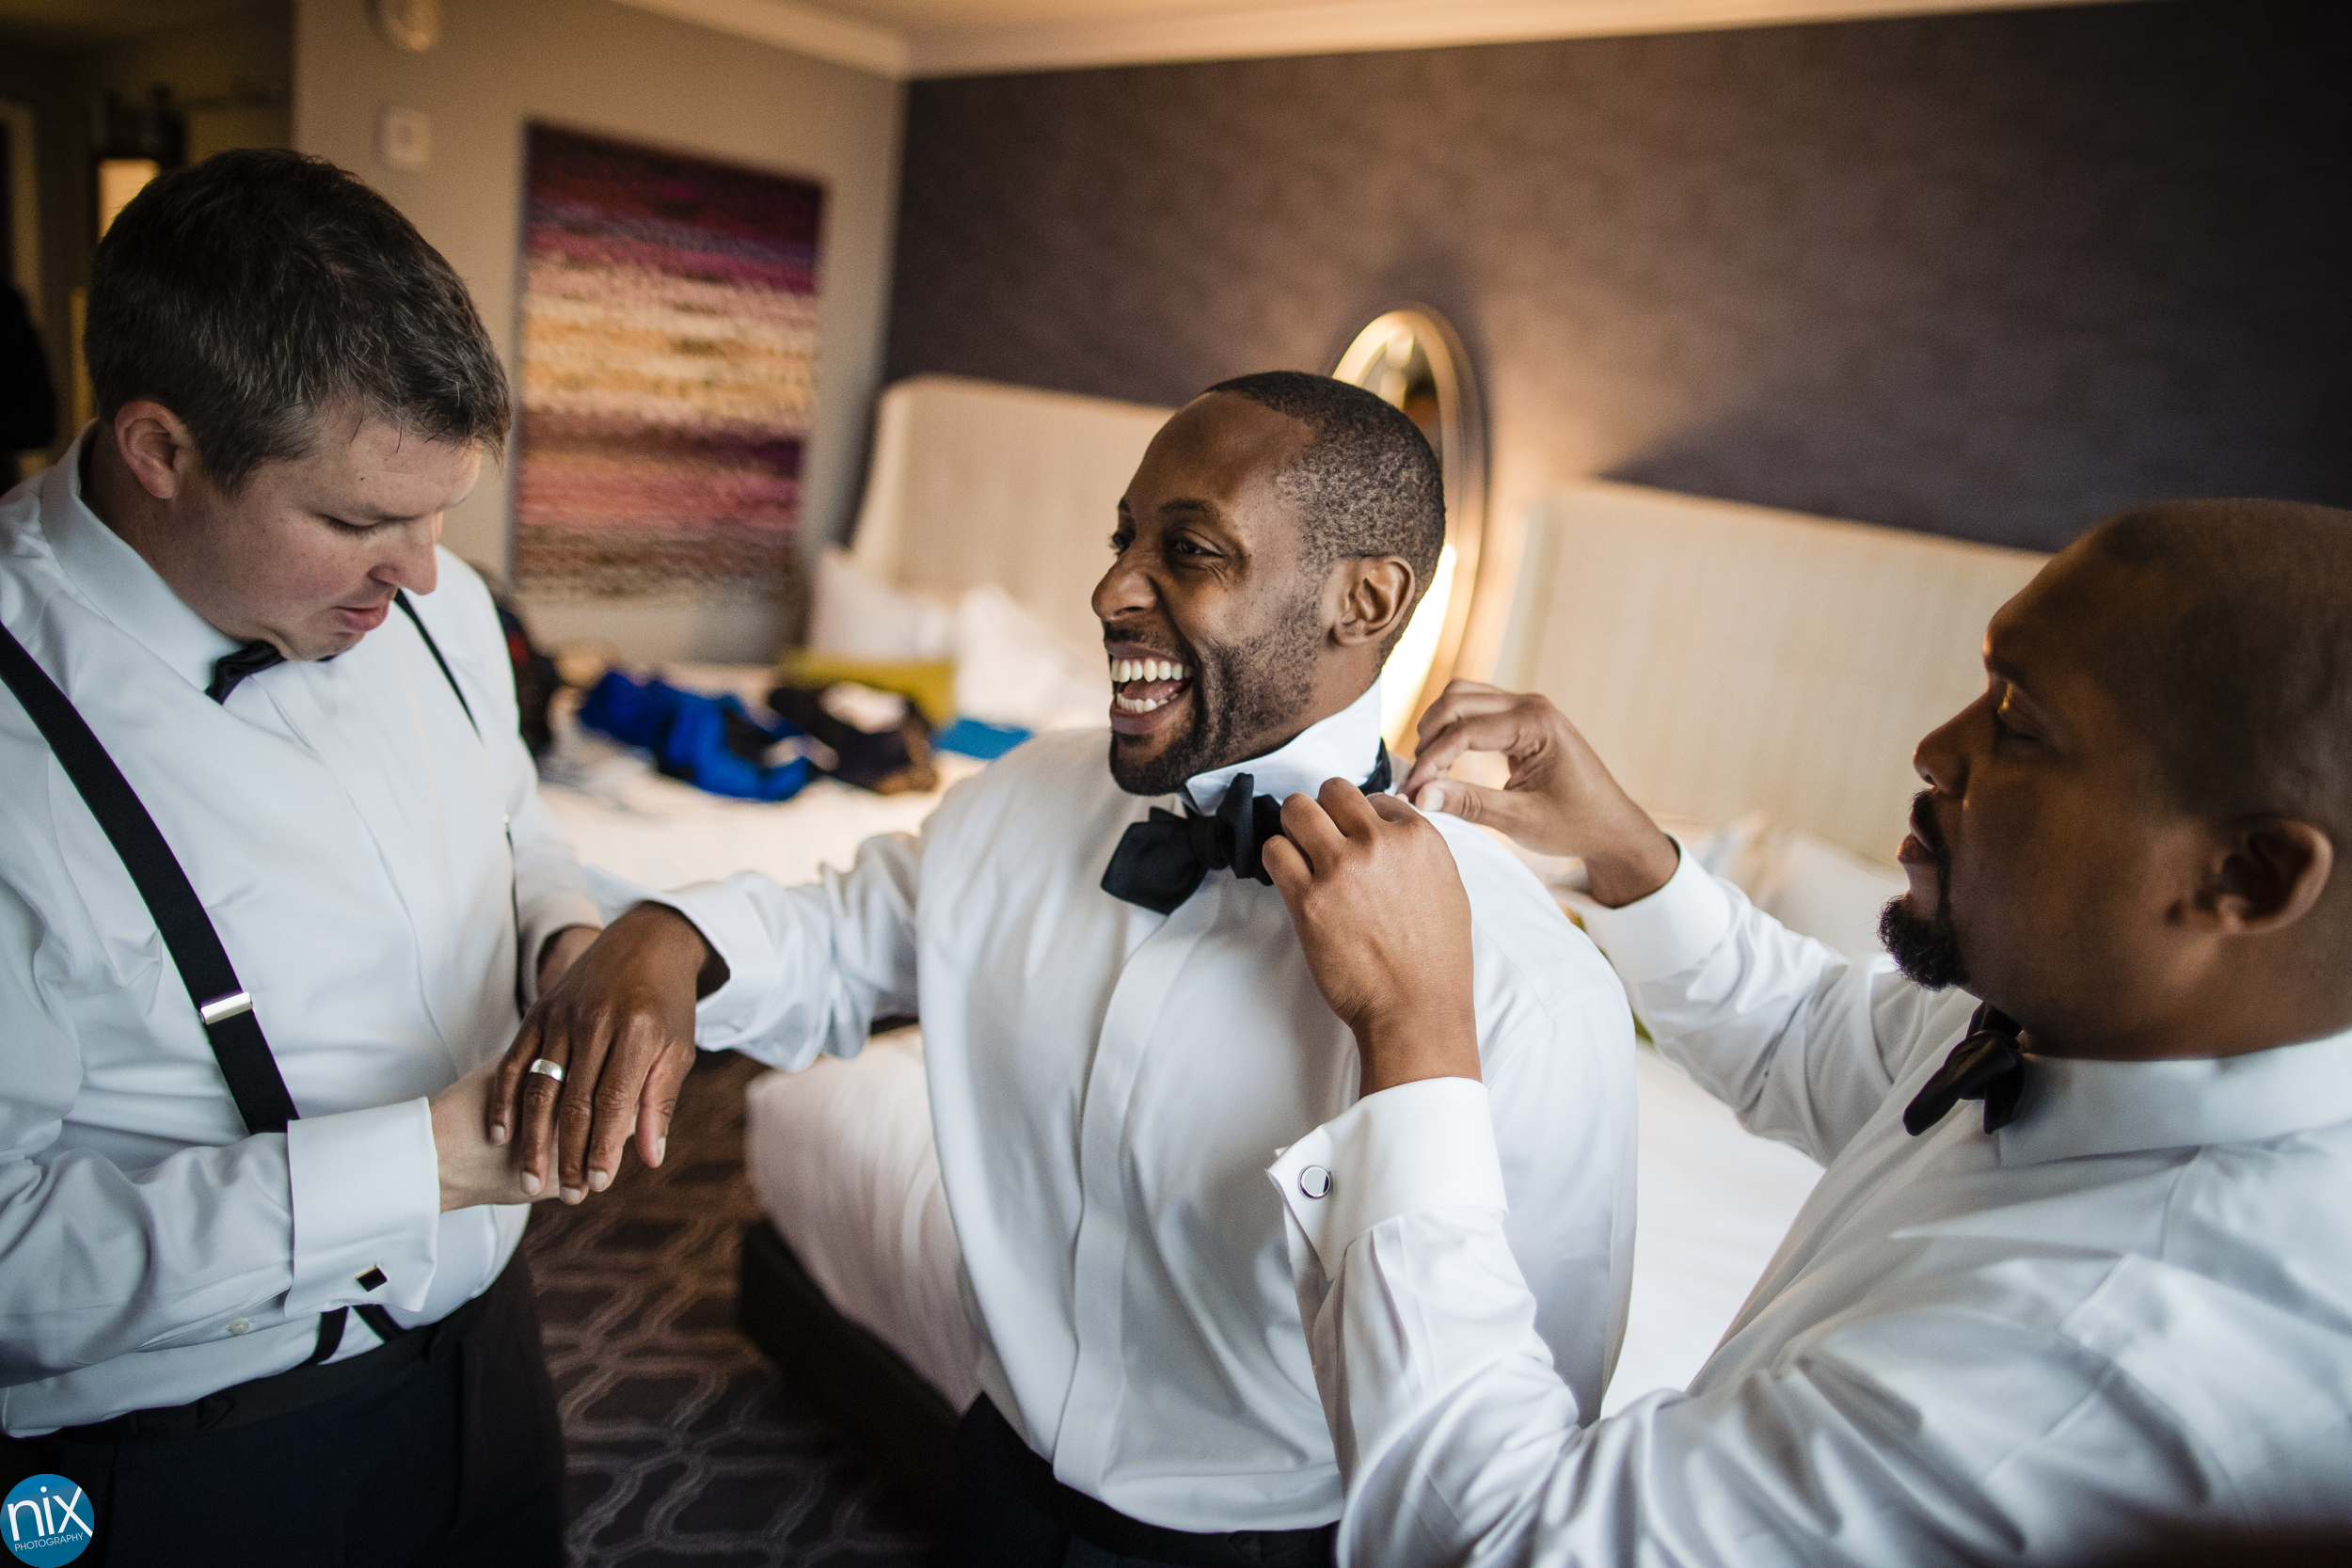 groomsment laigh before a wedding at Kimpton Tryon Park Hotel in Charlotte.jpg